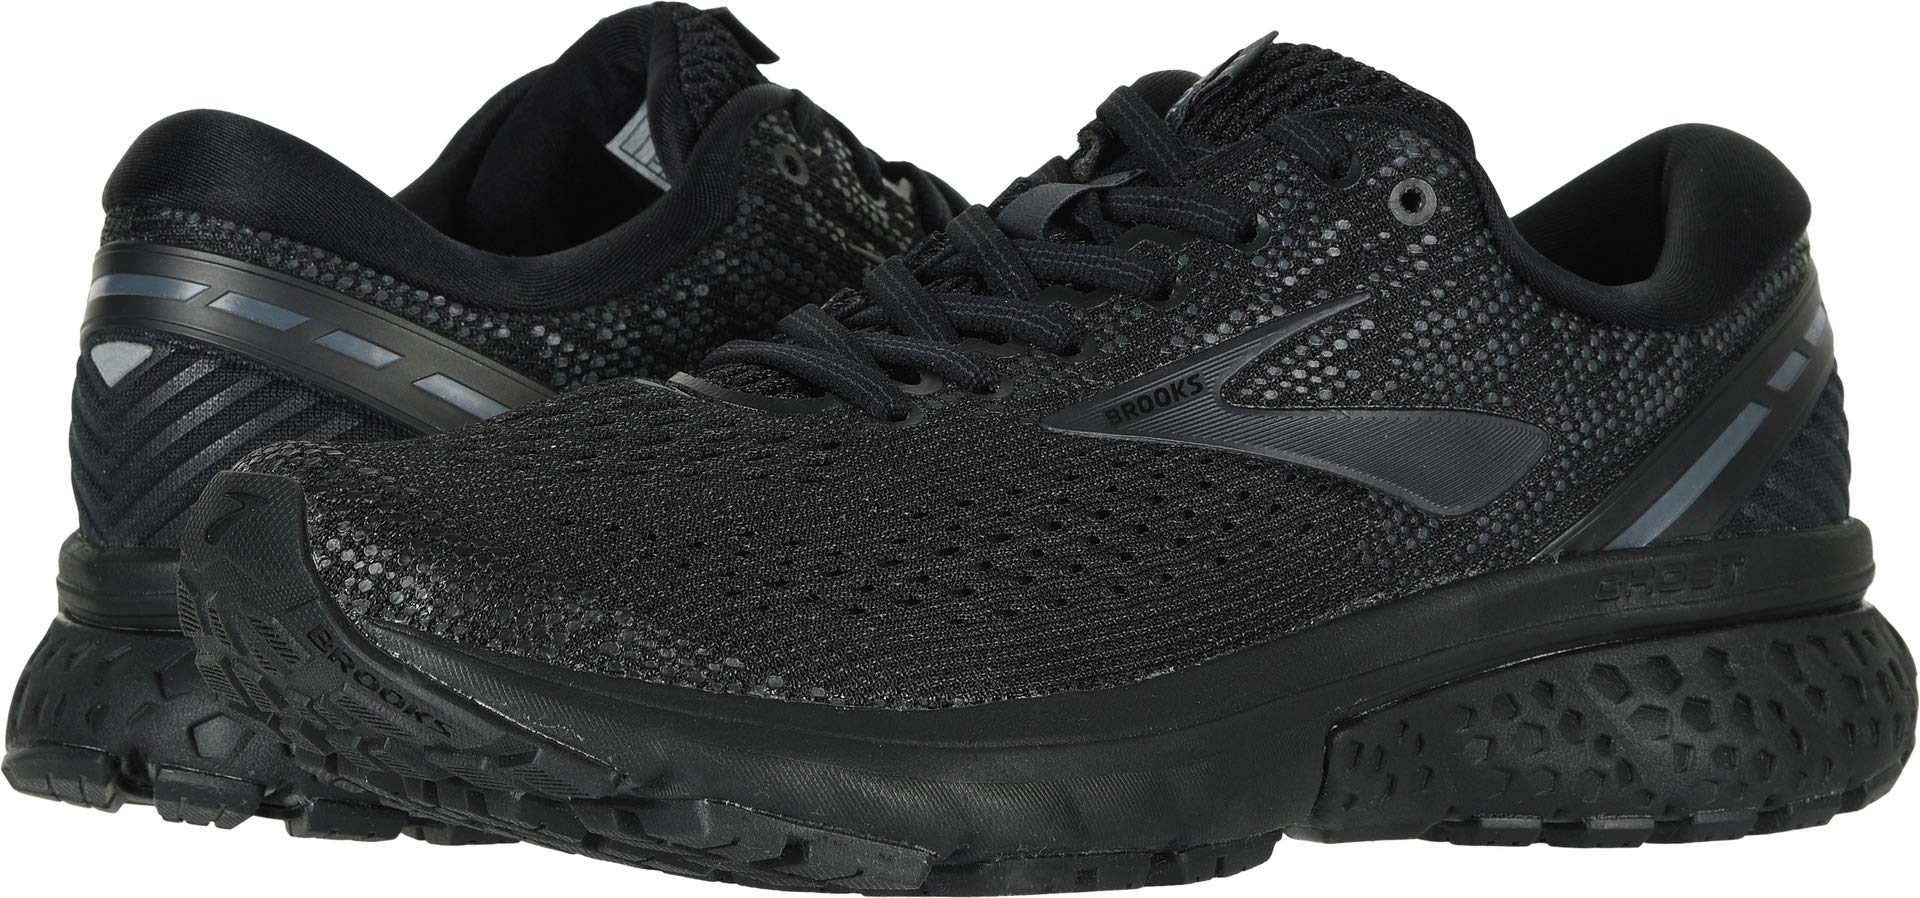 Brooks Women's Ghost 11 Black/Ebony 6 B US by Brooks (Image #1)